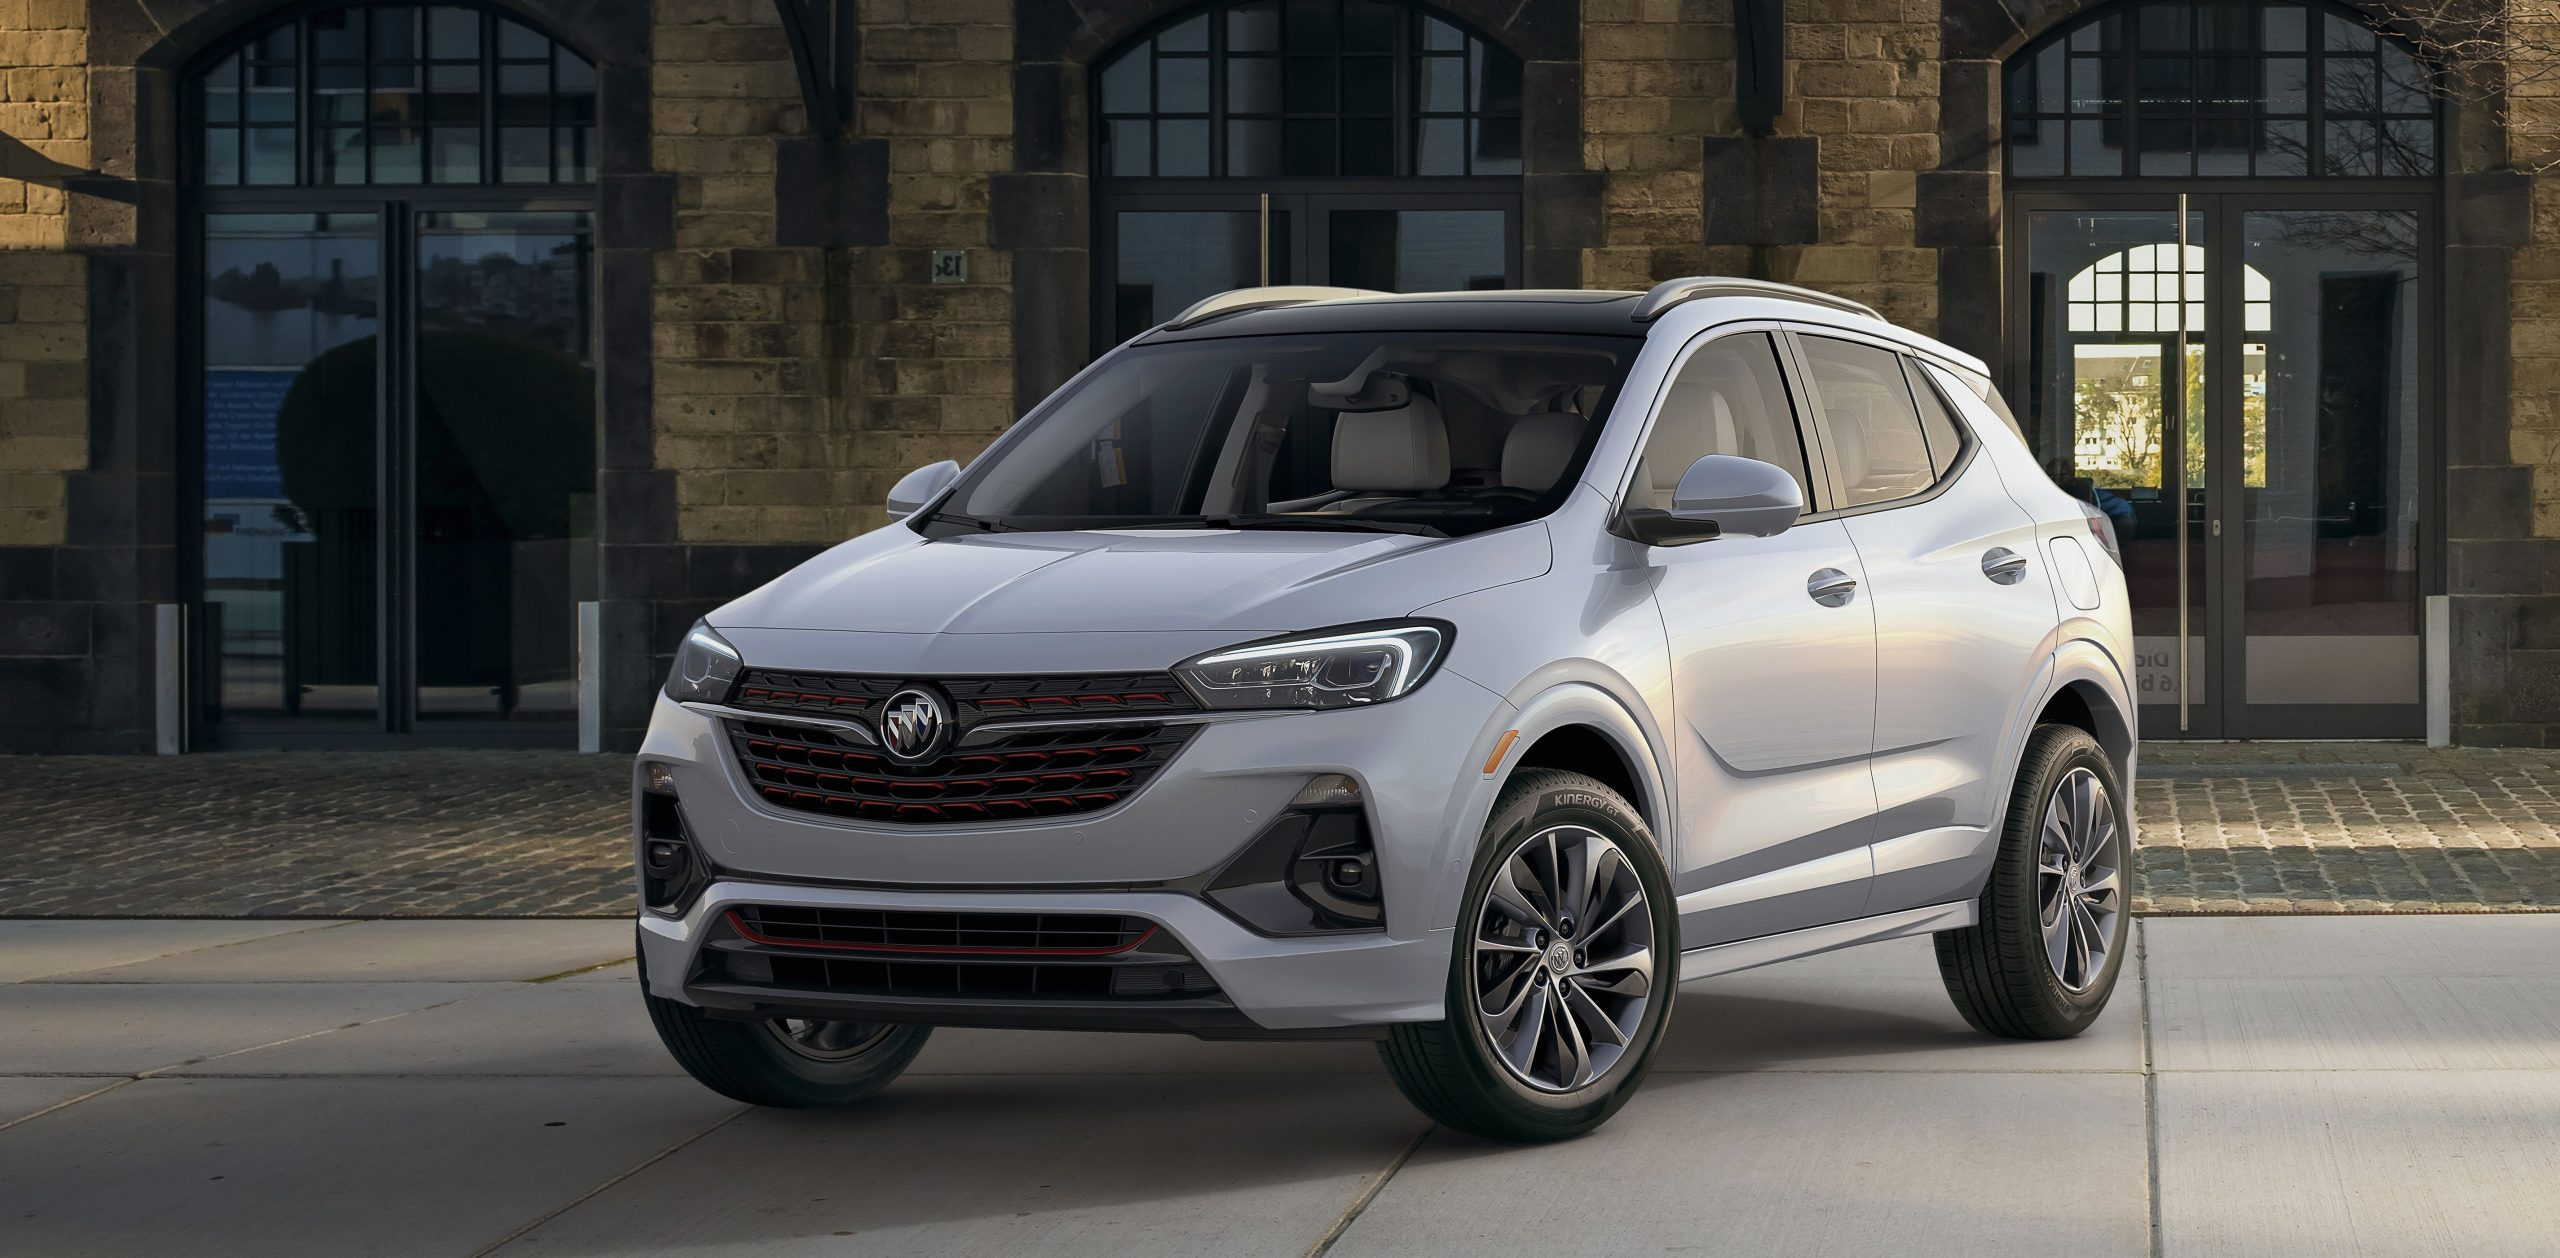 2020 Buick Encore Gx: What We Know So Far When Is The 2021 Buick Encore Gx Coming Out